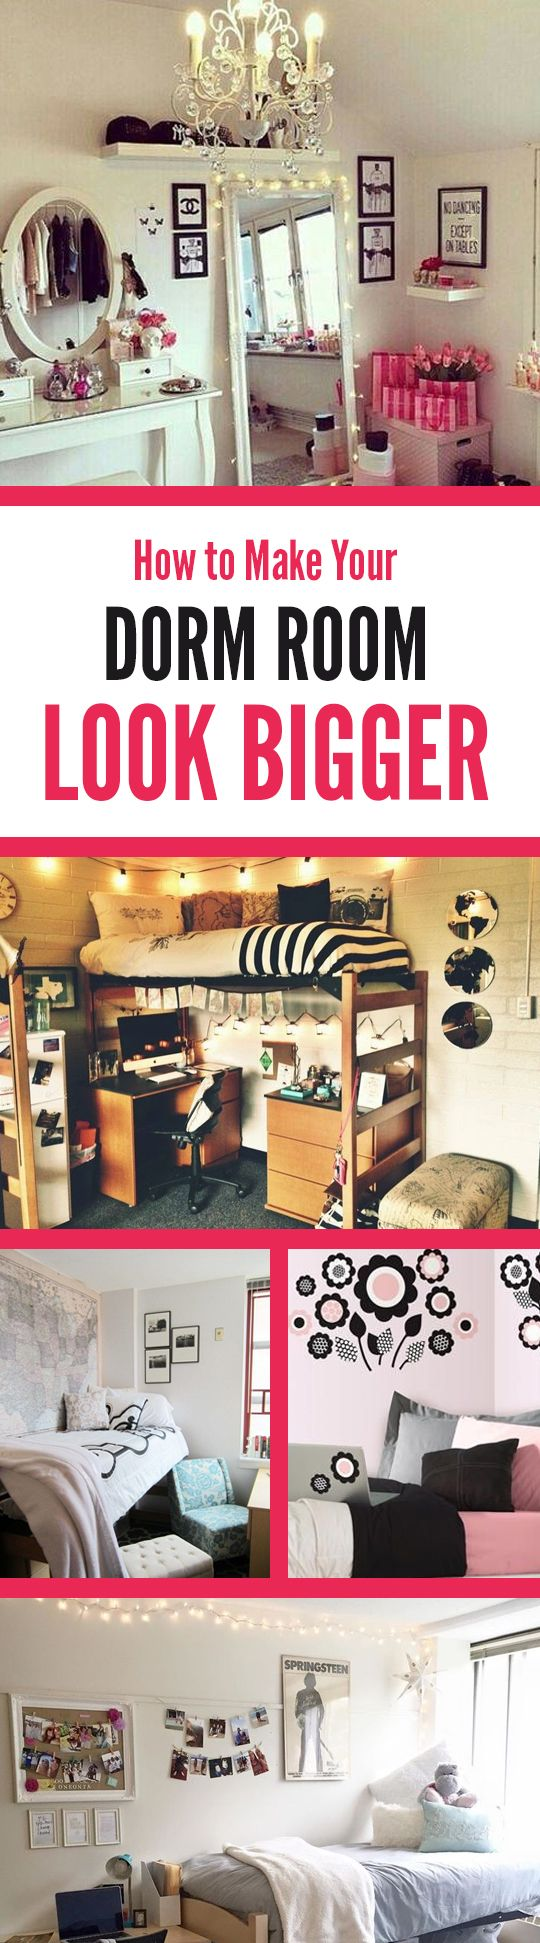 6 Tips to Make your Dorm Room Look Bigger